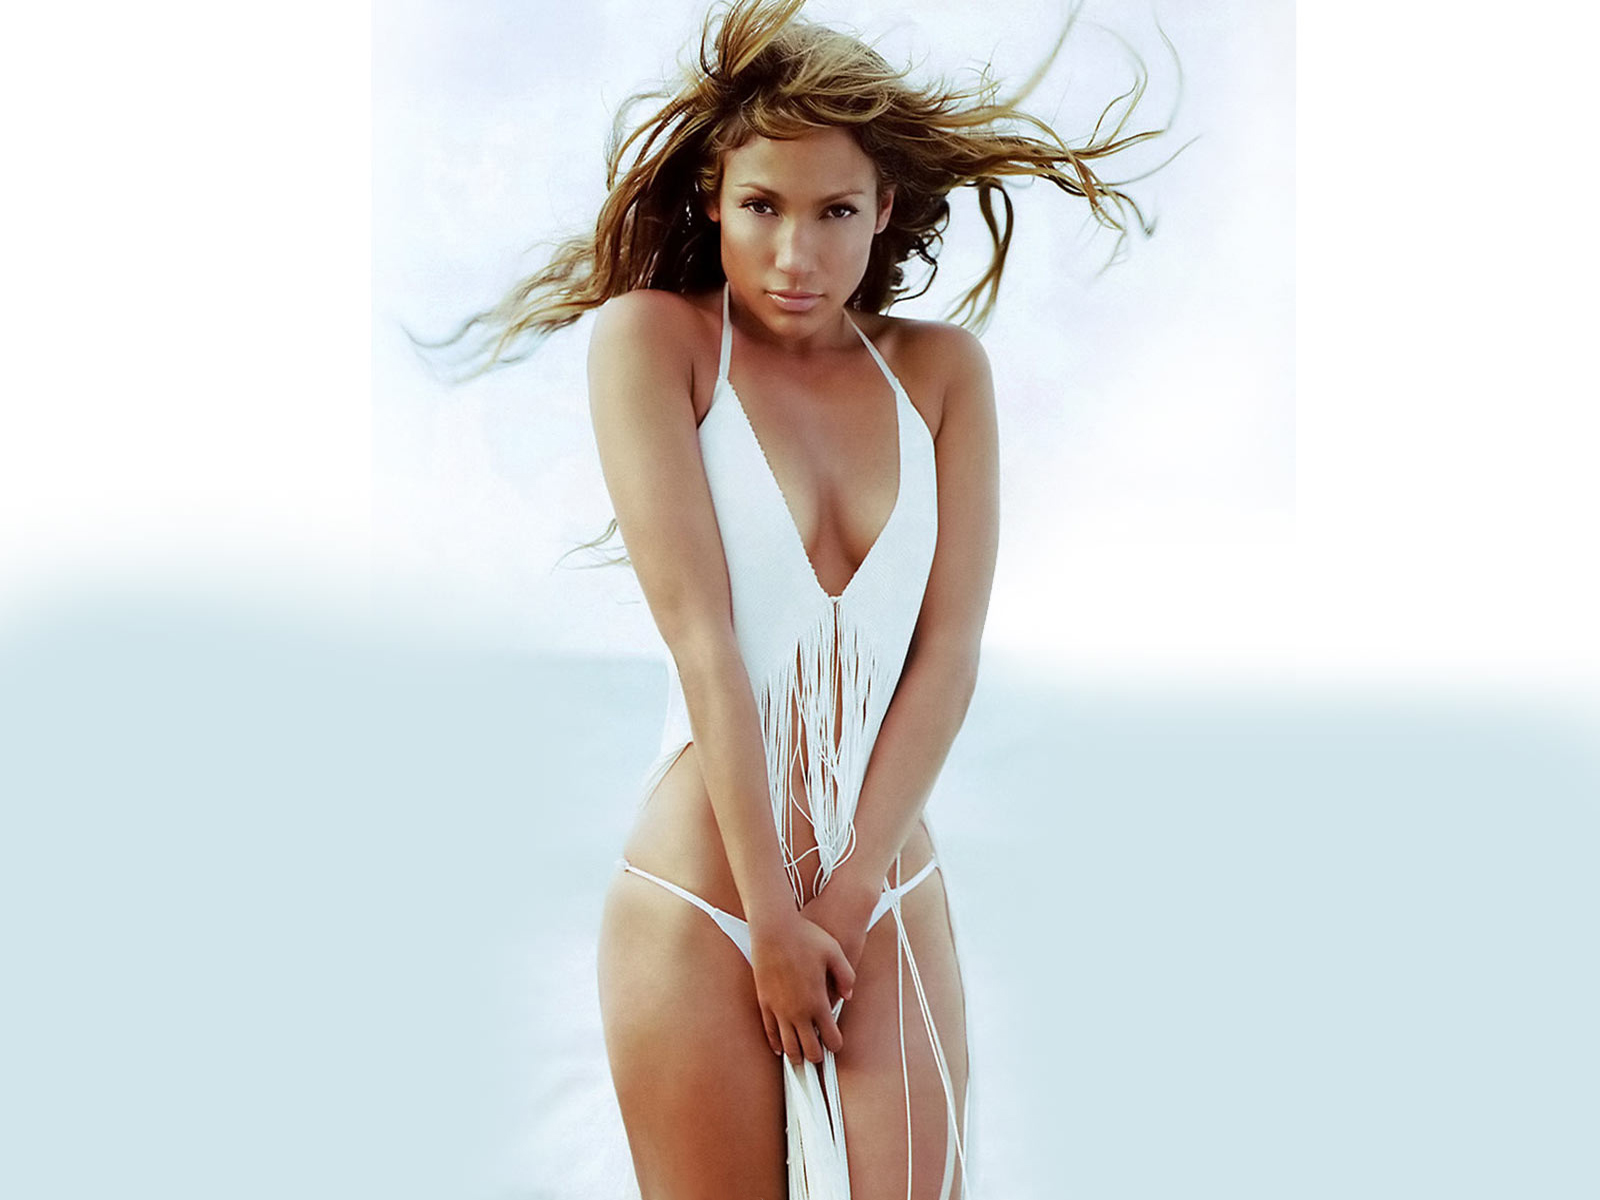 http://1.bp.blogspot.com/-JRWKcORsSbc/Tpa-iIjAu8I/AAAAAAAAA3Q/jAncfFpzLuQ/s1600/jennifer_lopez_hot_Actress_wallpapers_2587.jpg